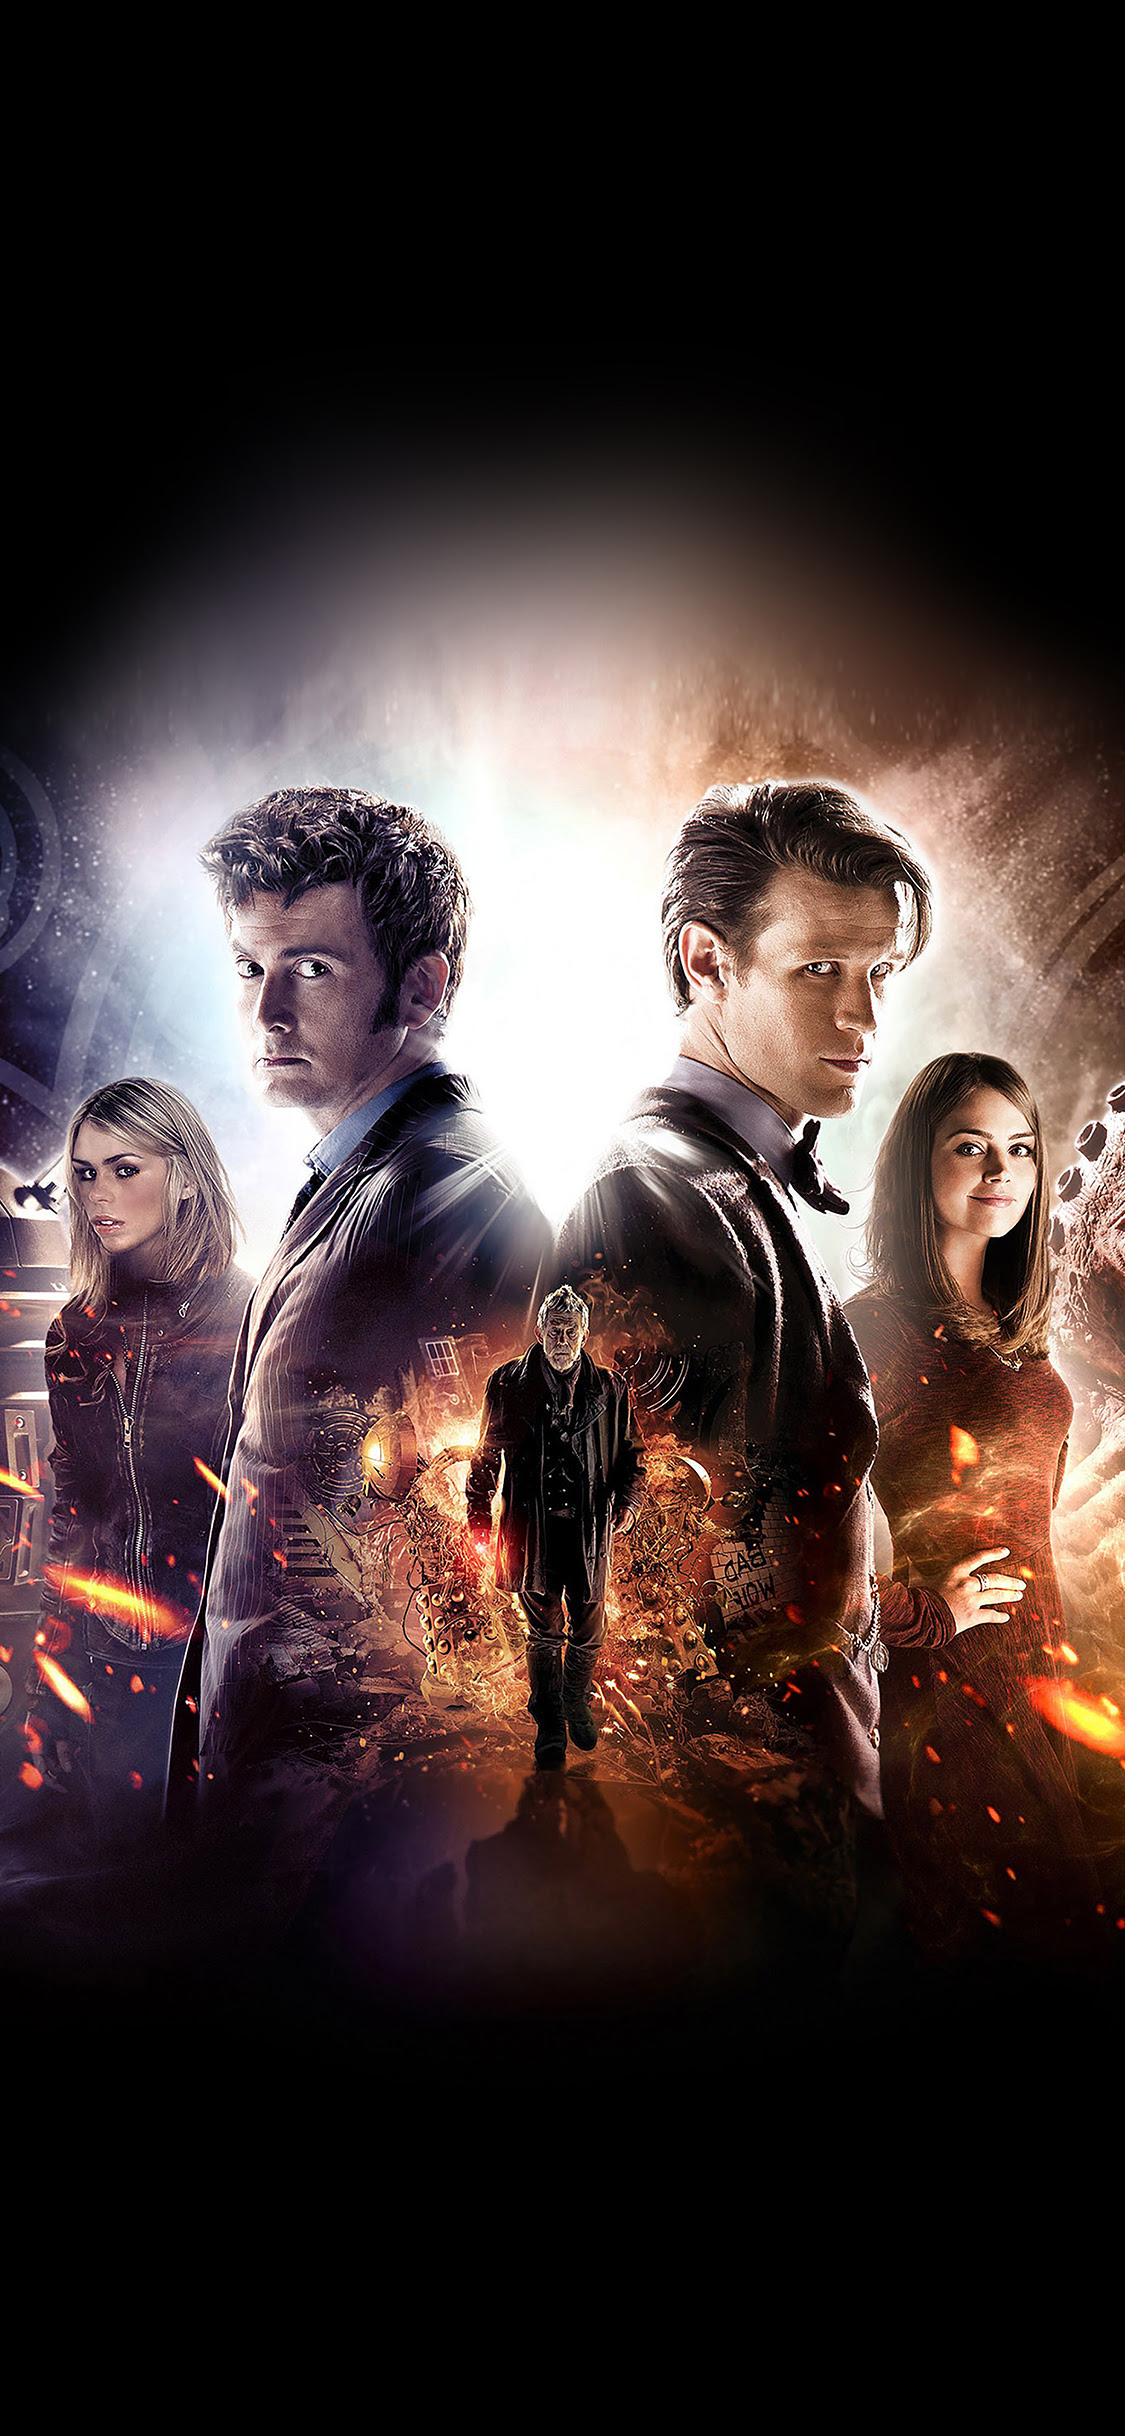 Ac28 Wallpaper Doctor Who 50th Poster Film Face